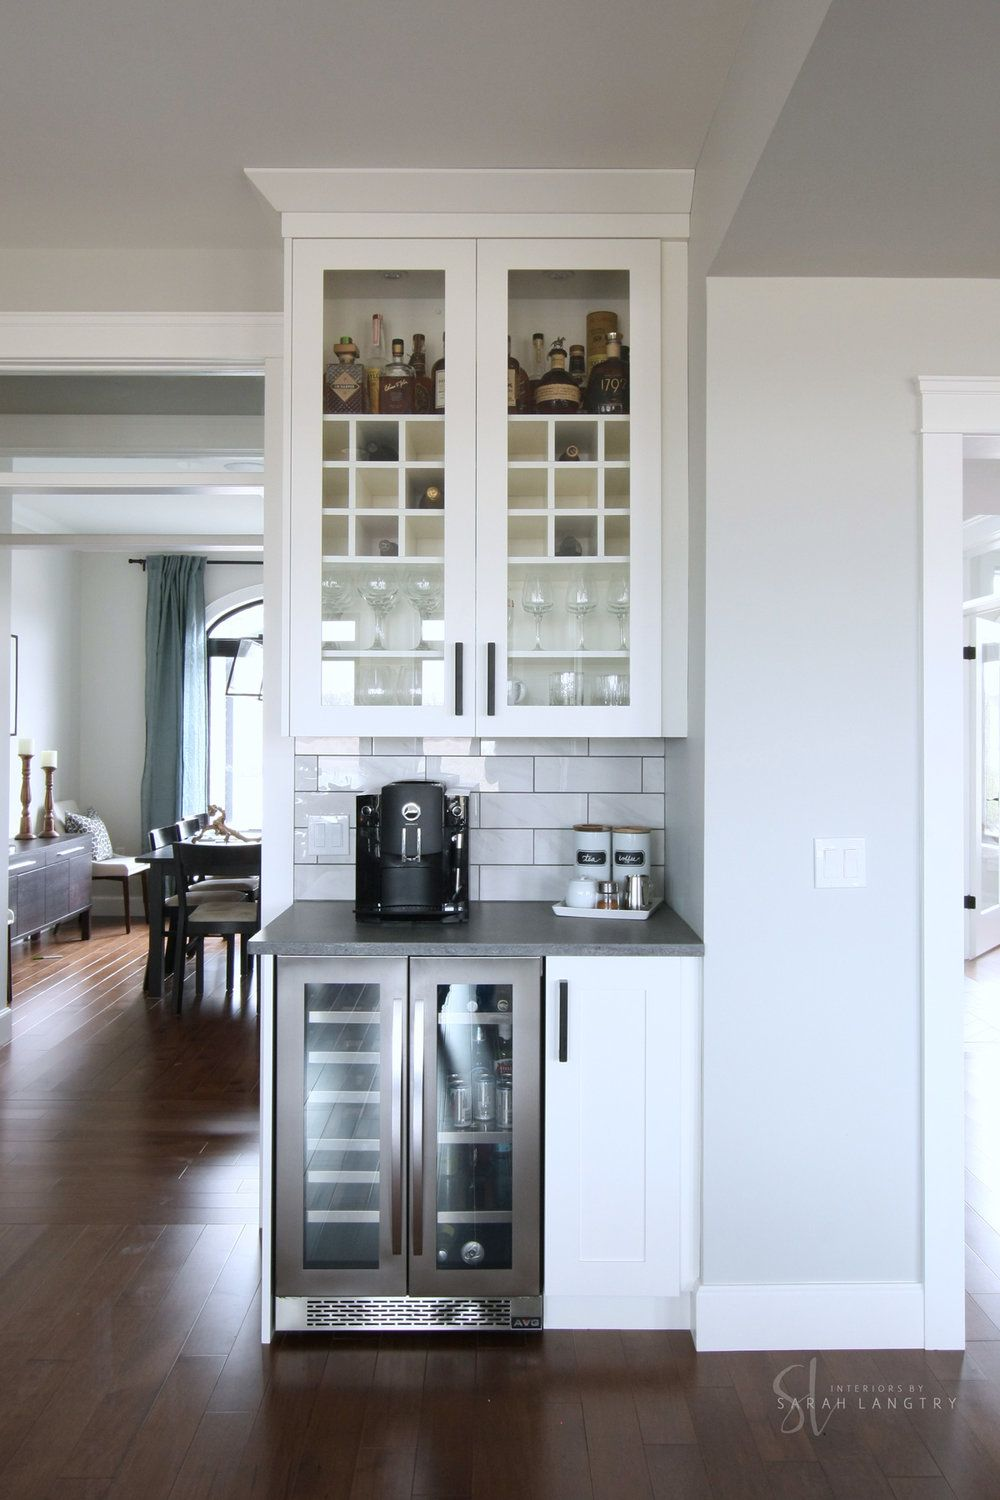 6 design tips to help you plan your dream kitchen in 2019 life rh pinterest com